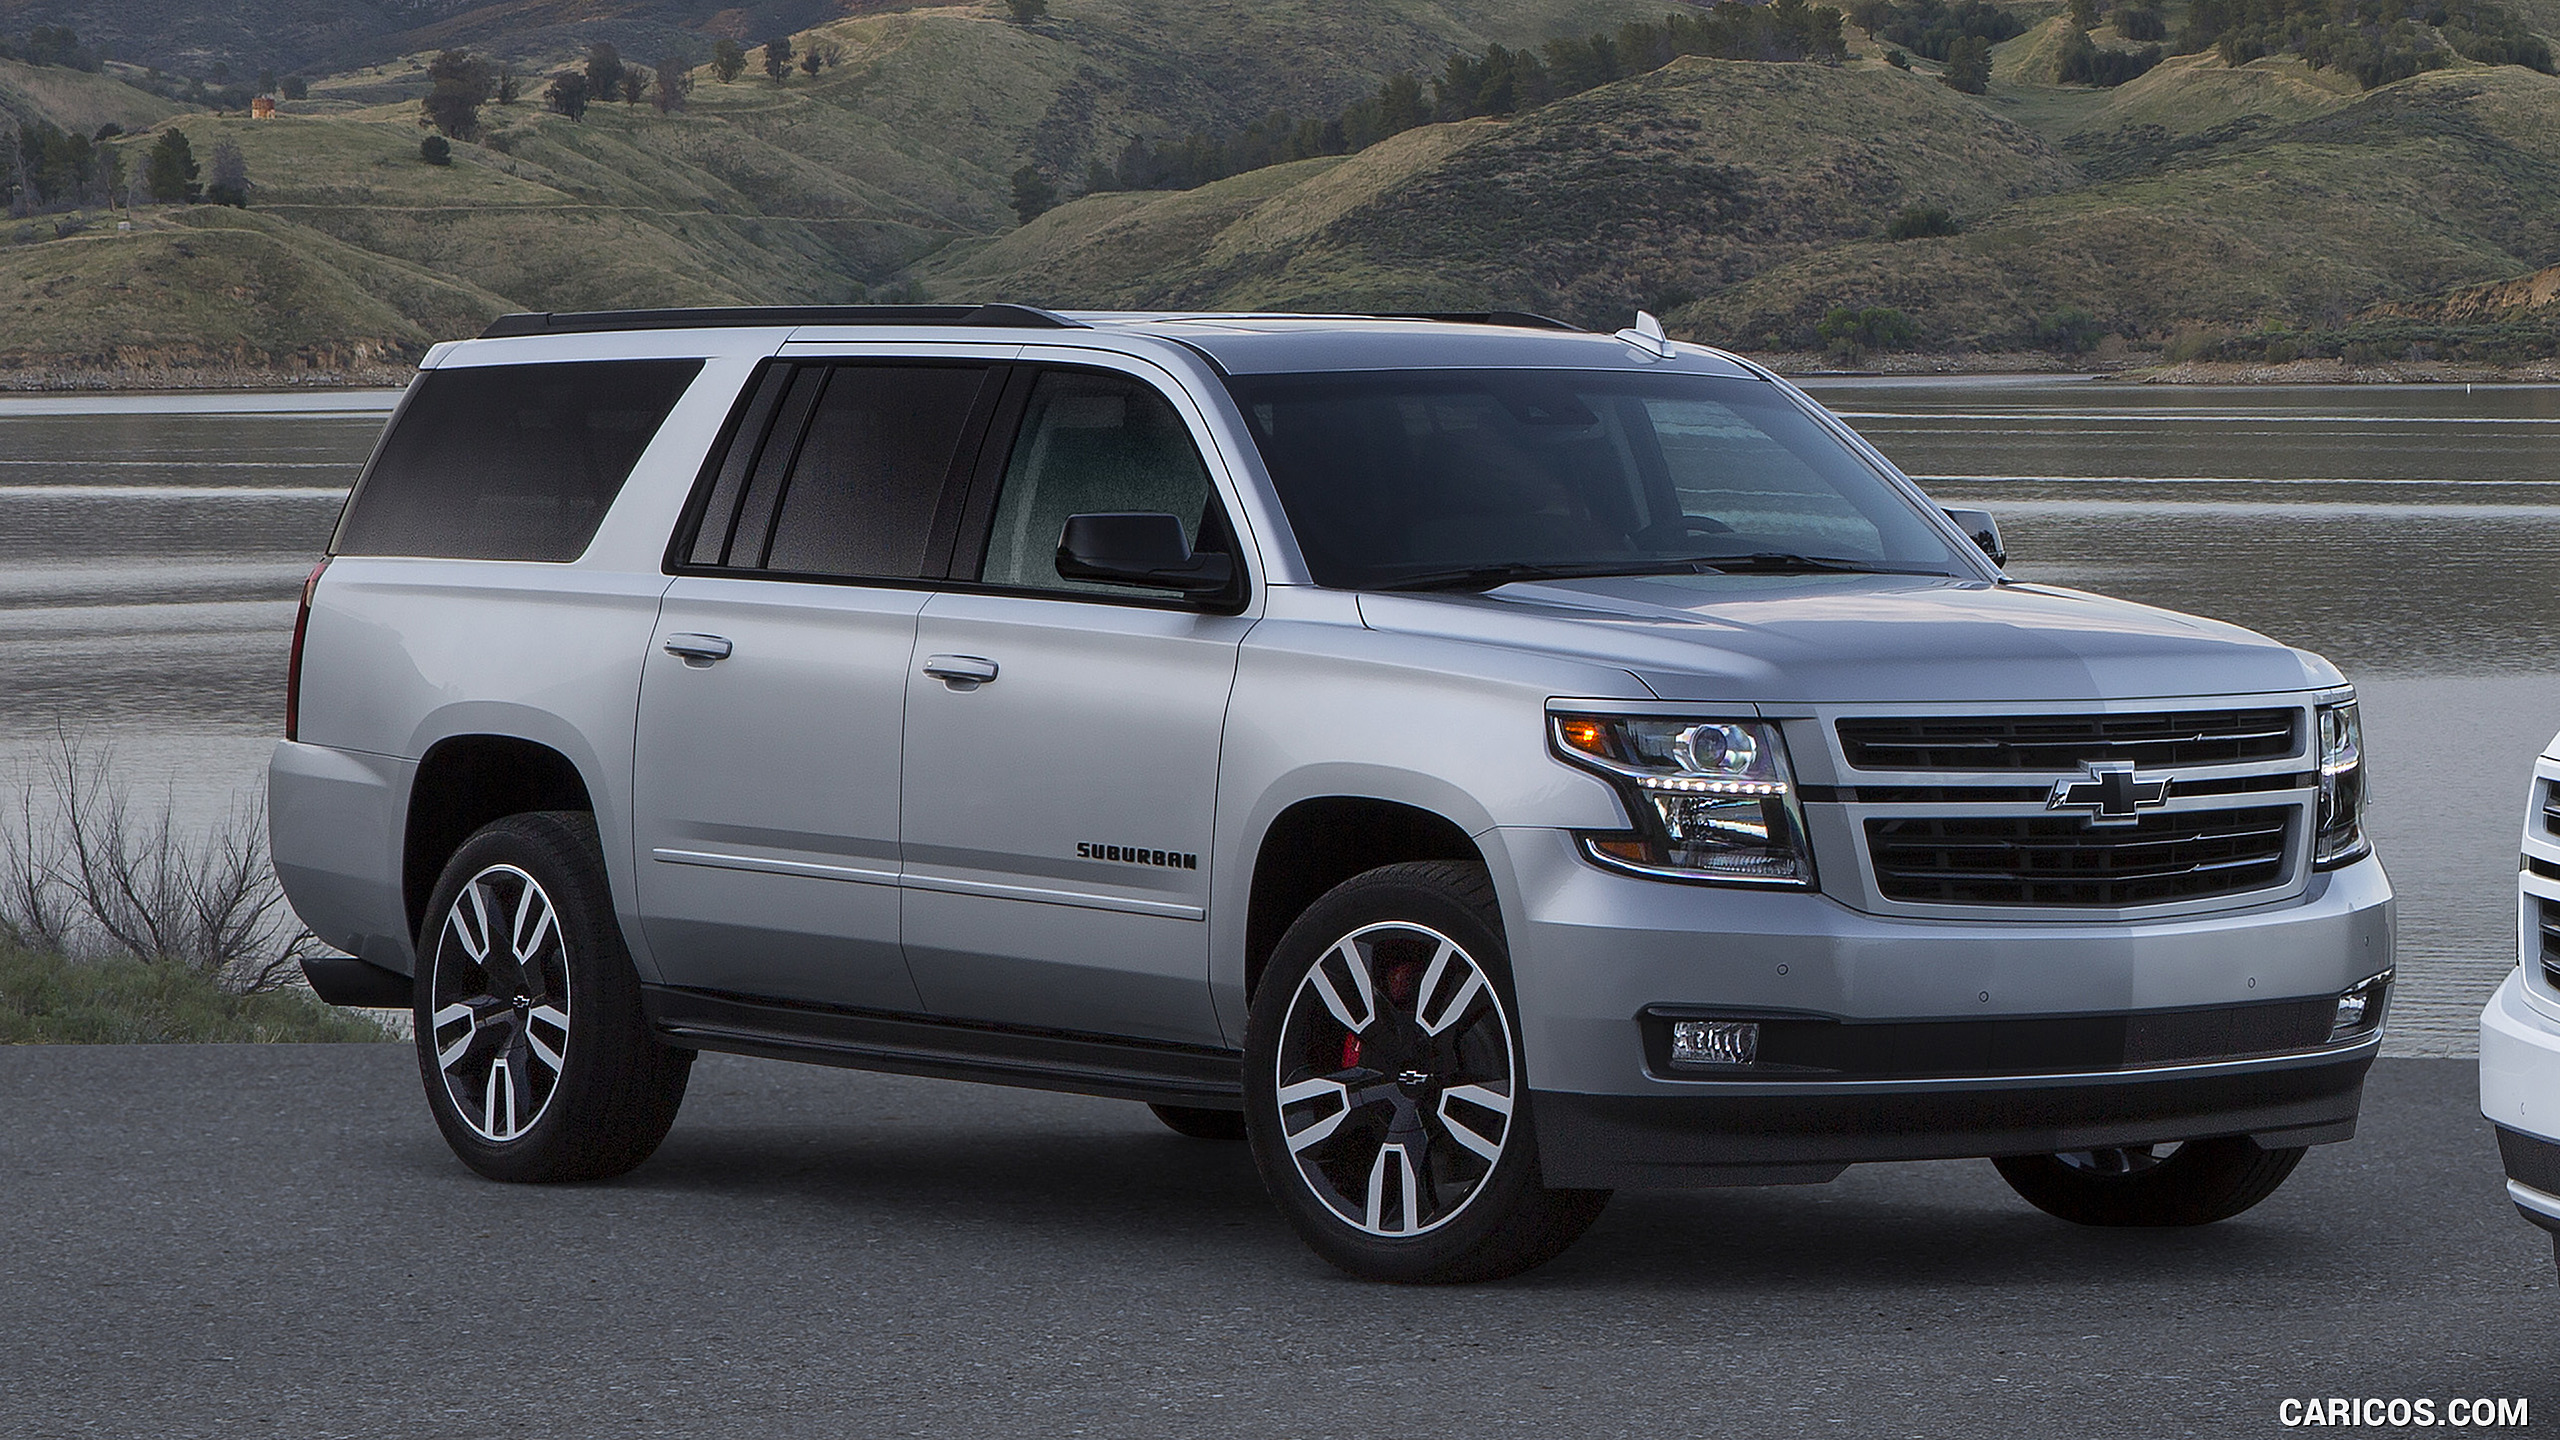 2019 chevy suburban owners manual